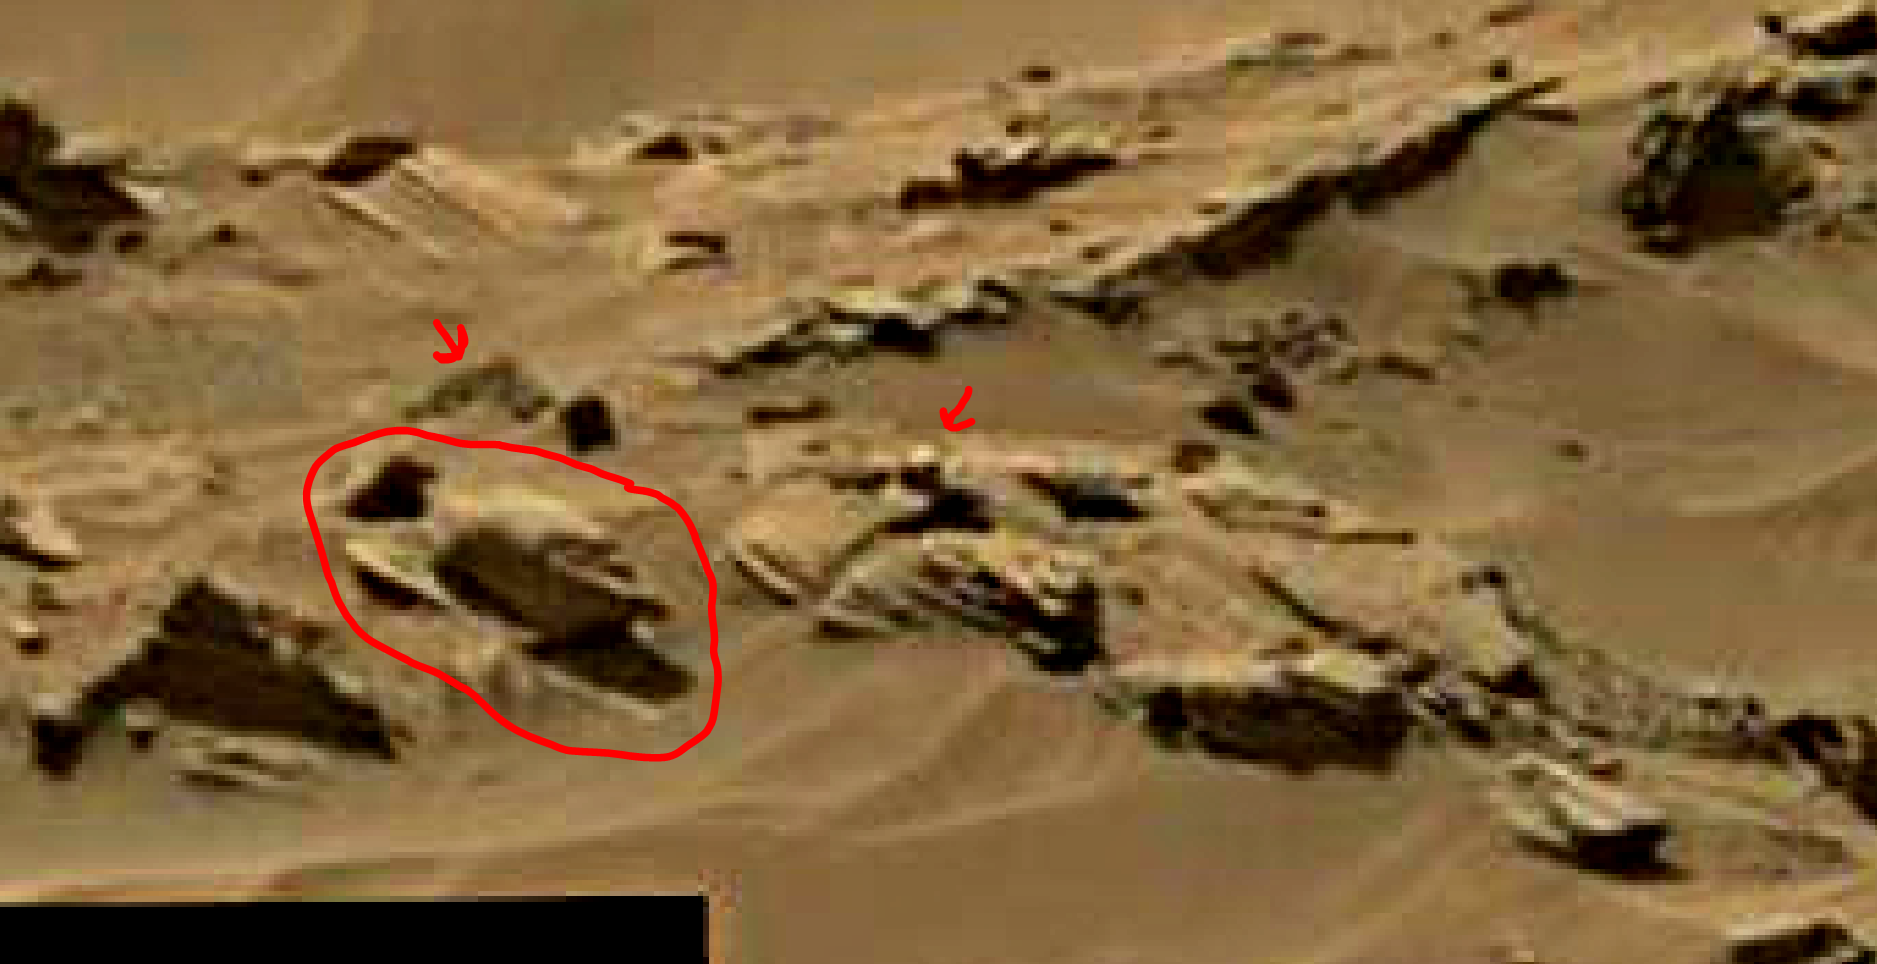 mars sol 1344 anomaly-artifacts 10a was life on mars